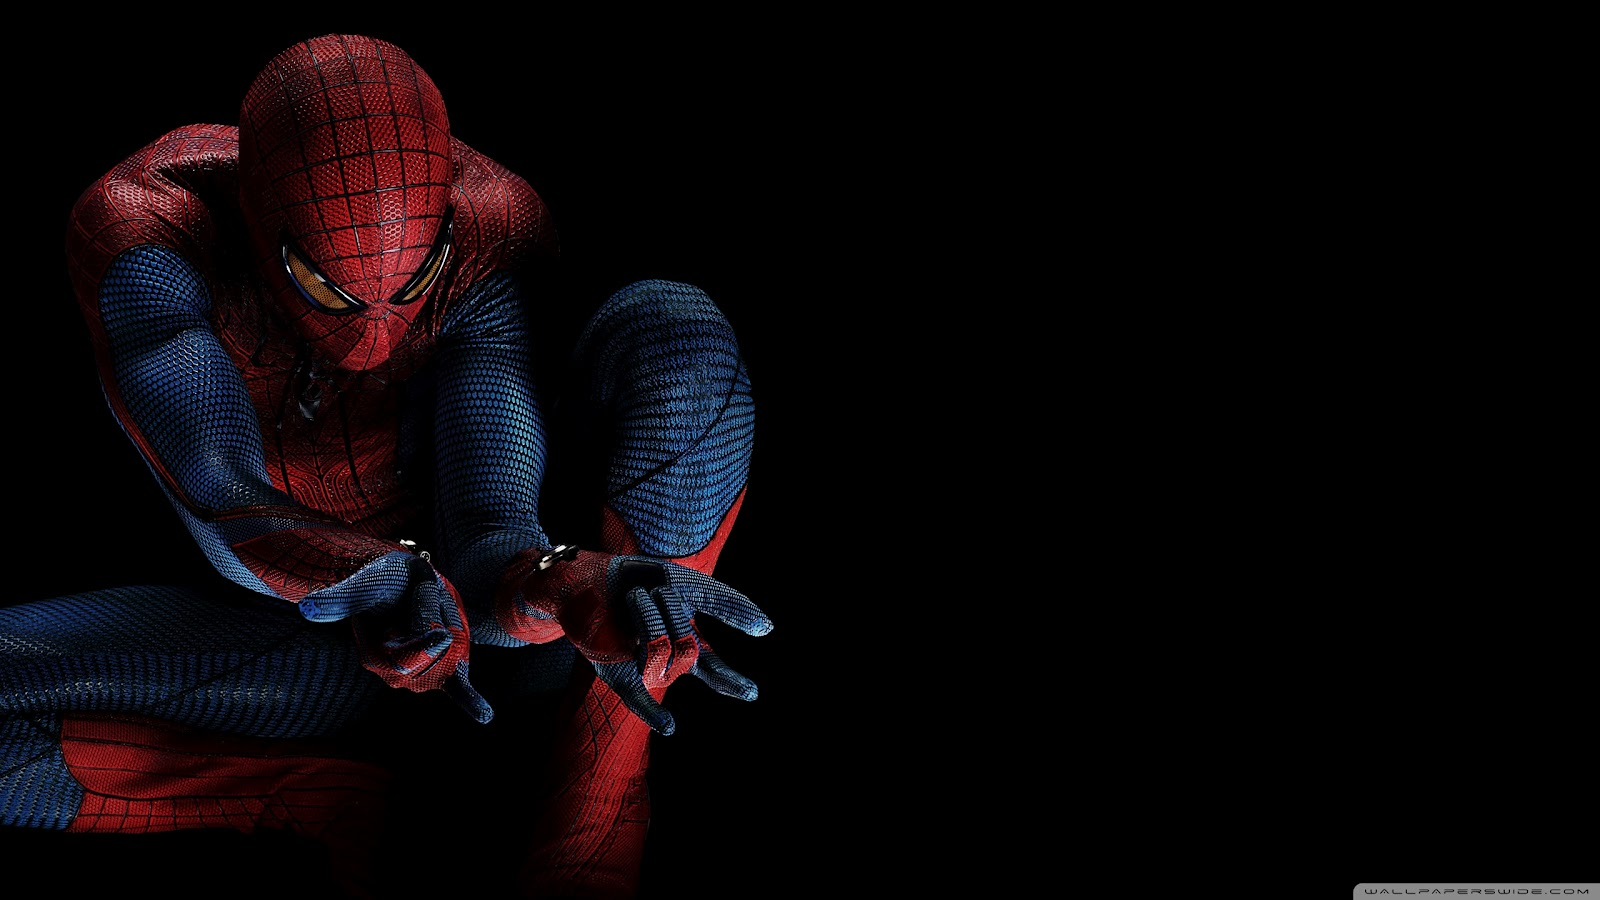 The Amazing Spiderman Wallpaper | All About Movies